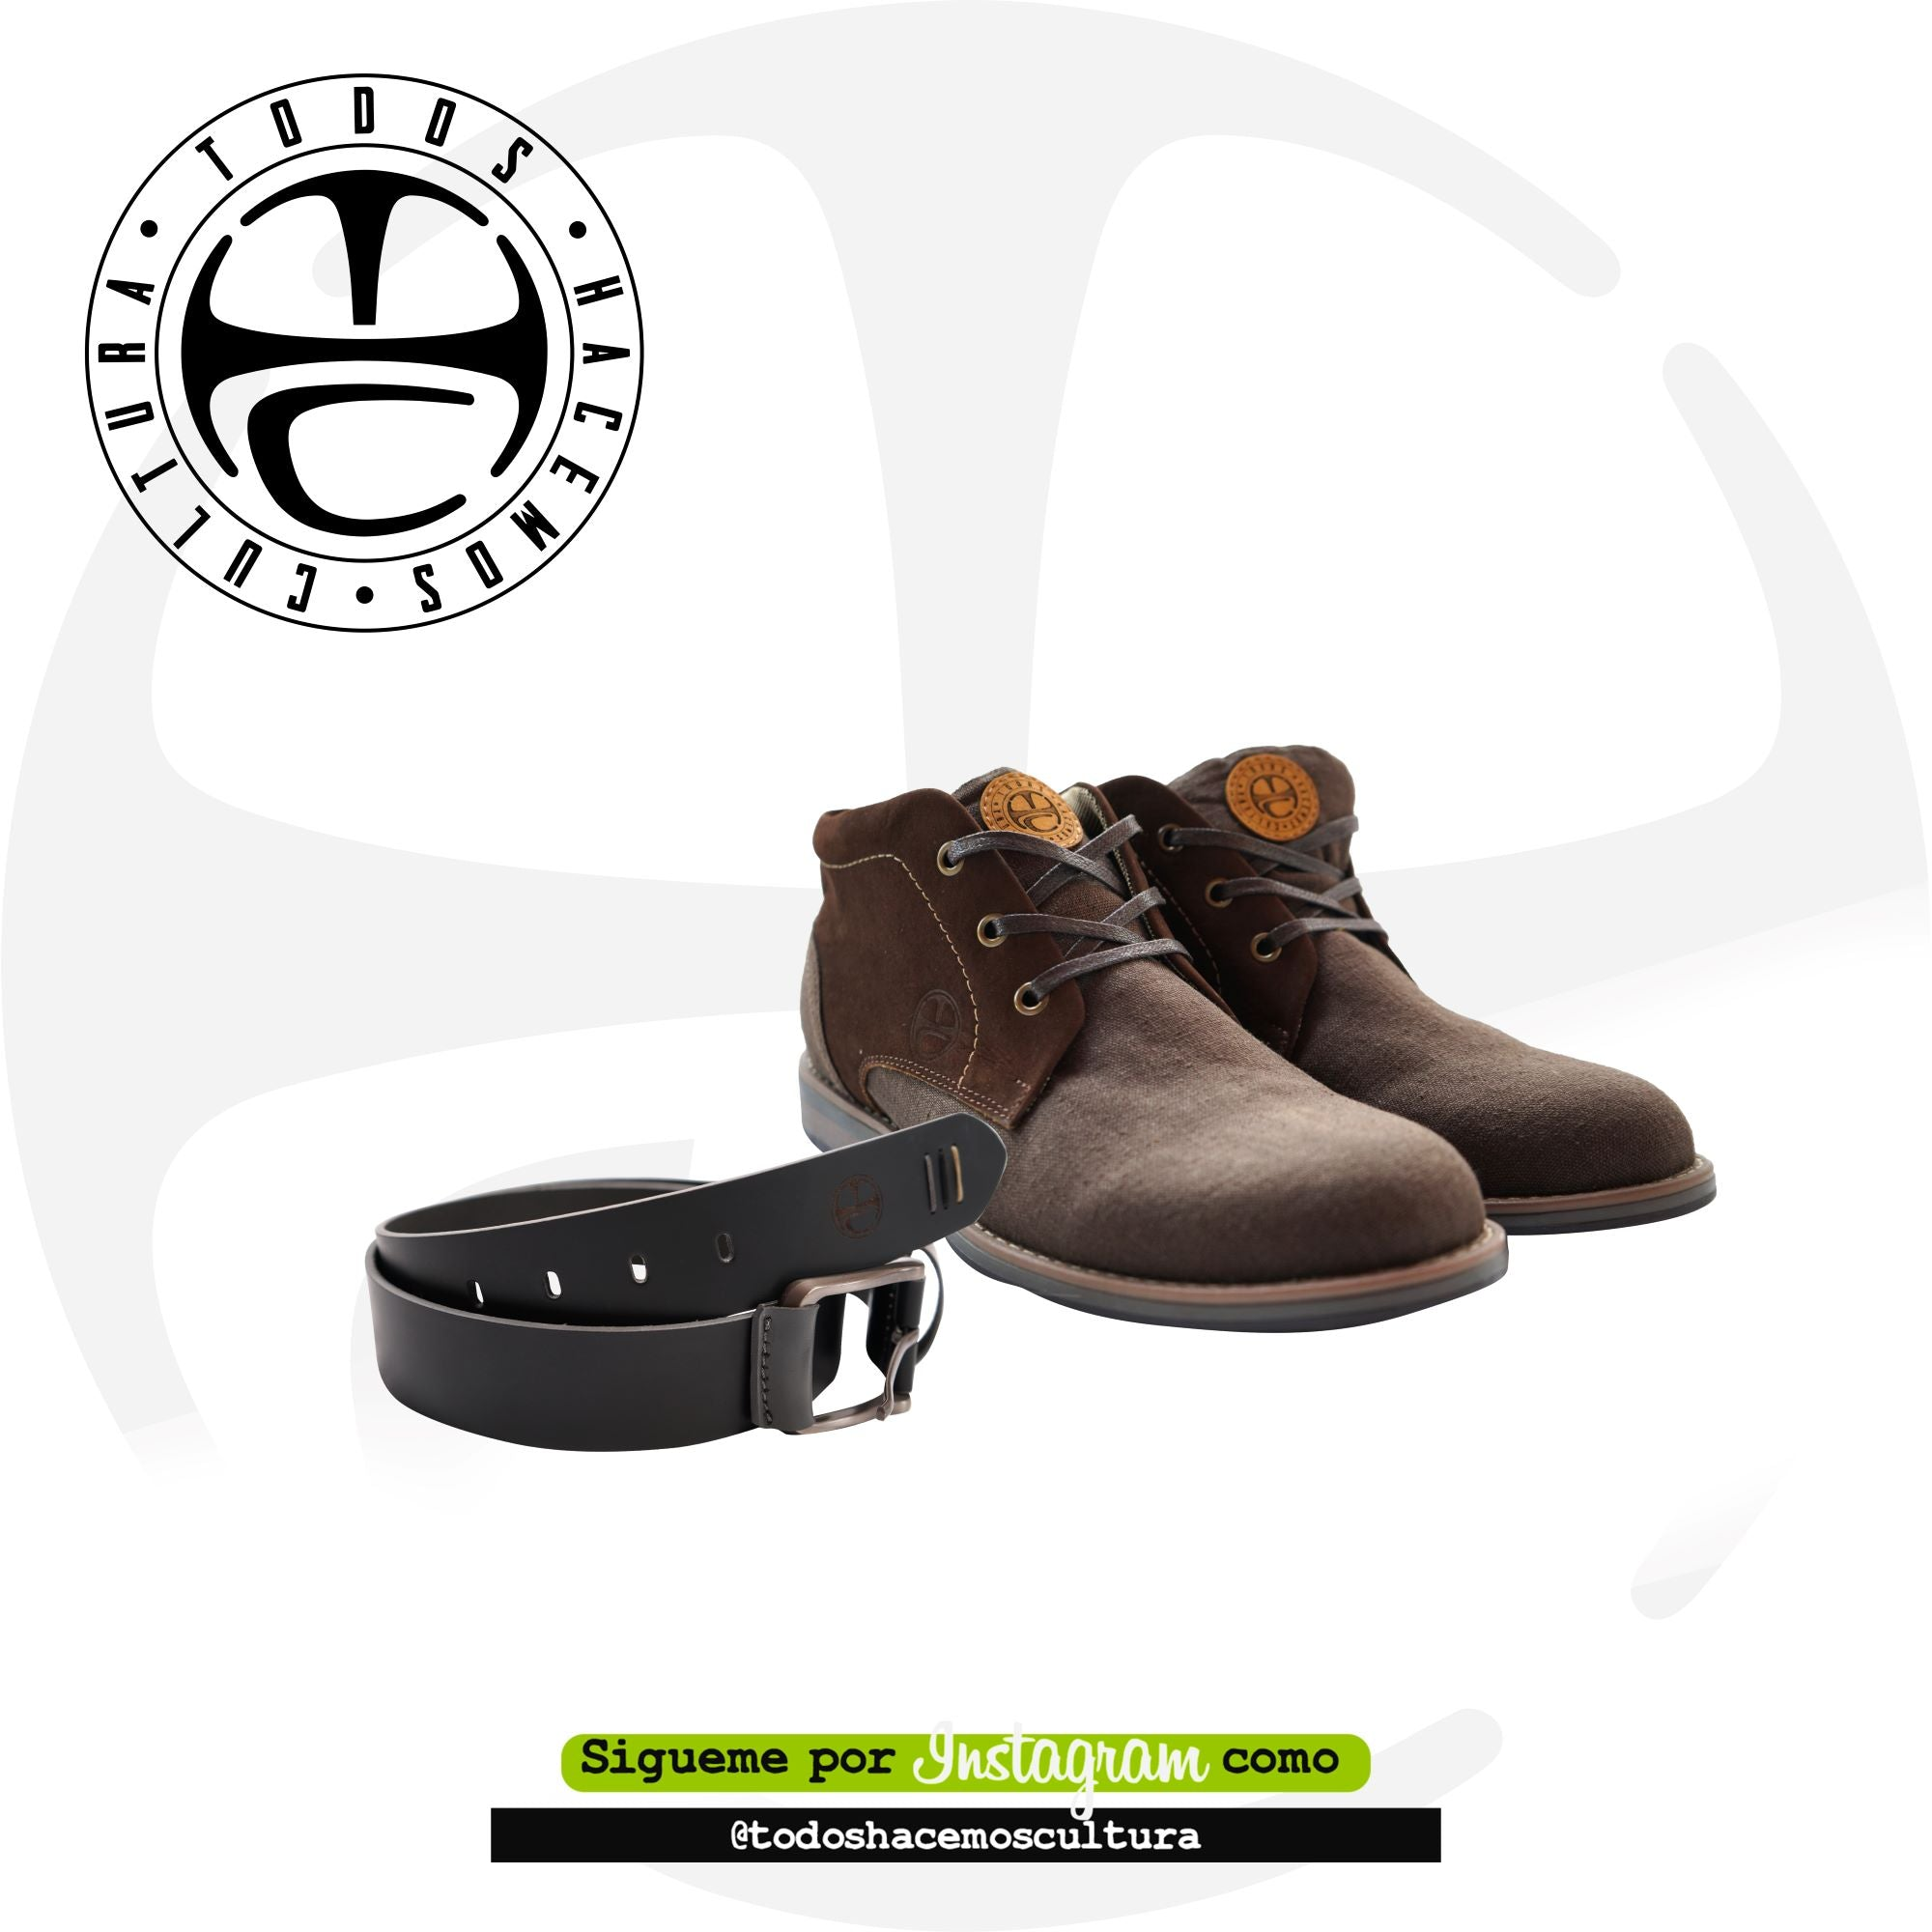 KIT 10L BROWN: ZAPATOS Y CORREA